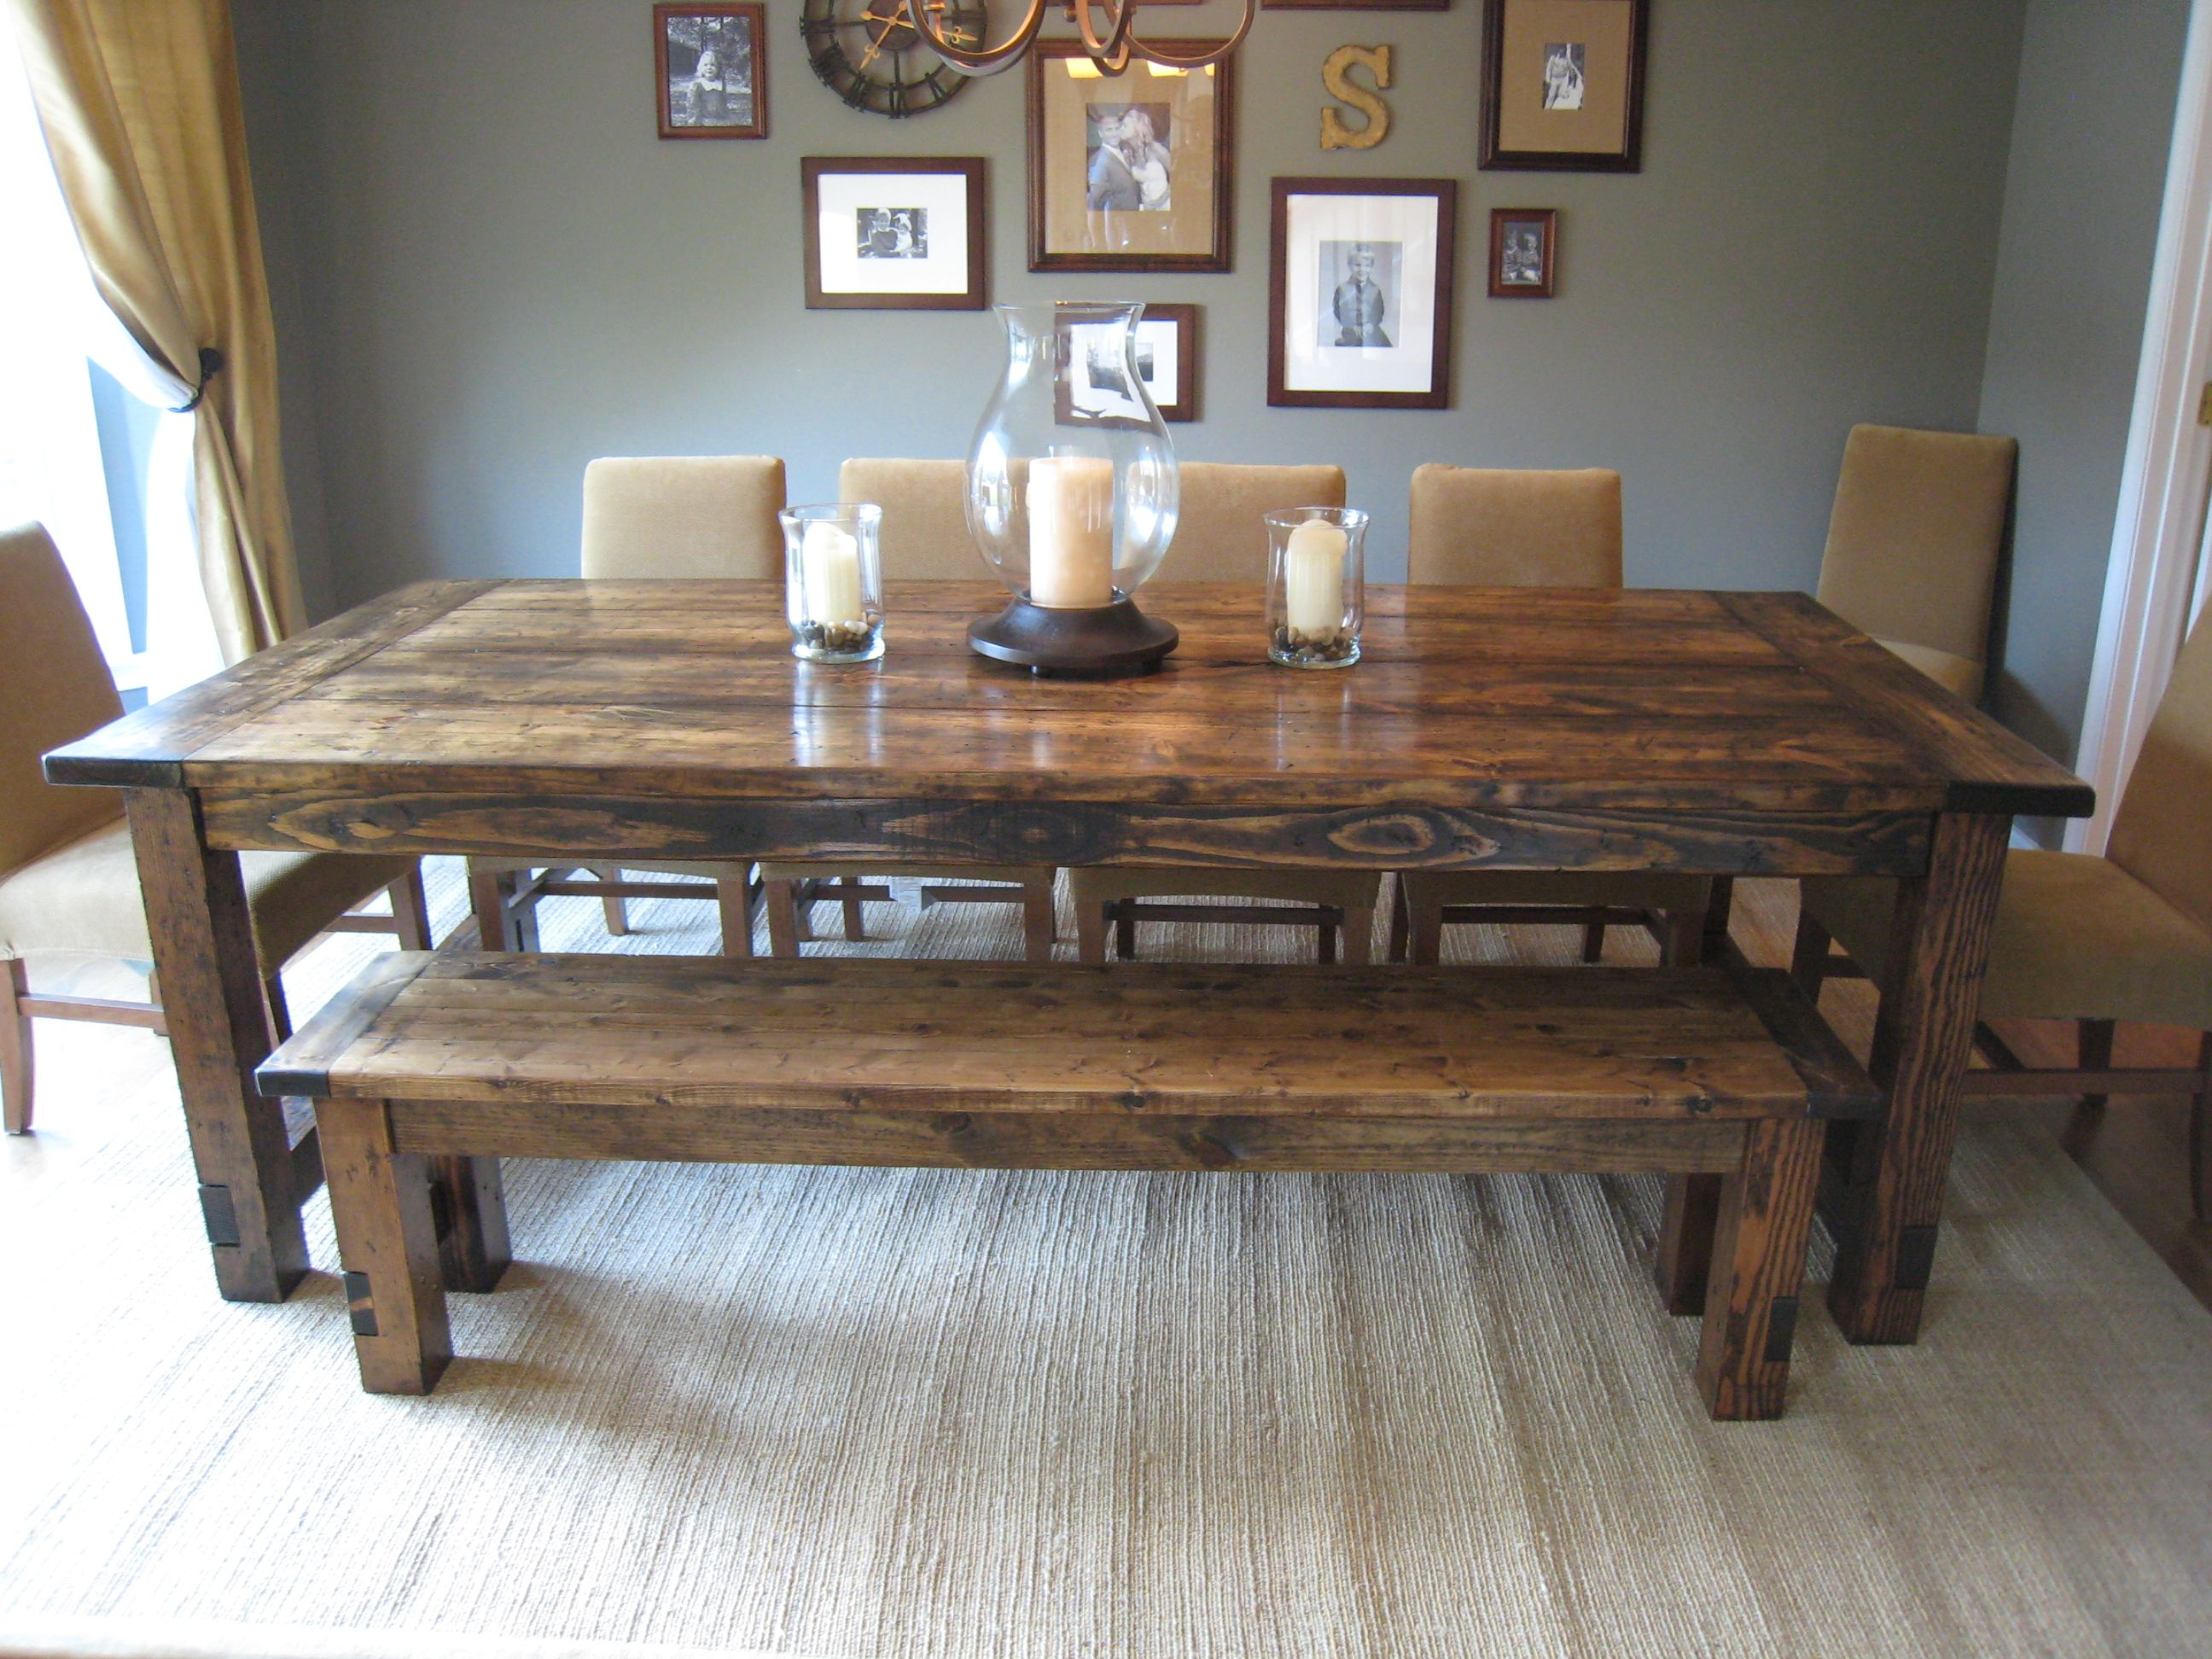 Restoration Hardware Farmhouse Table Replica They Made It Themselves Incredible